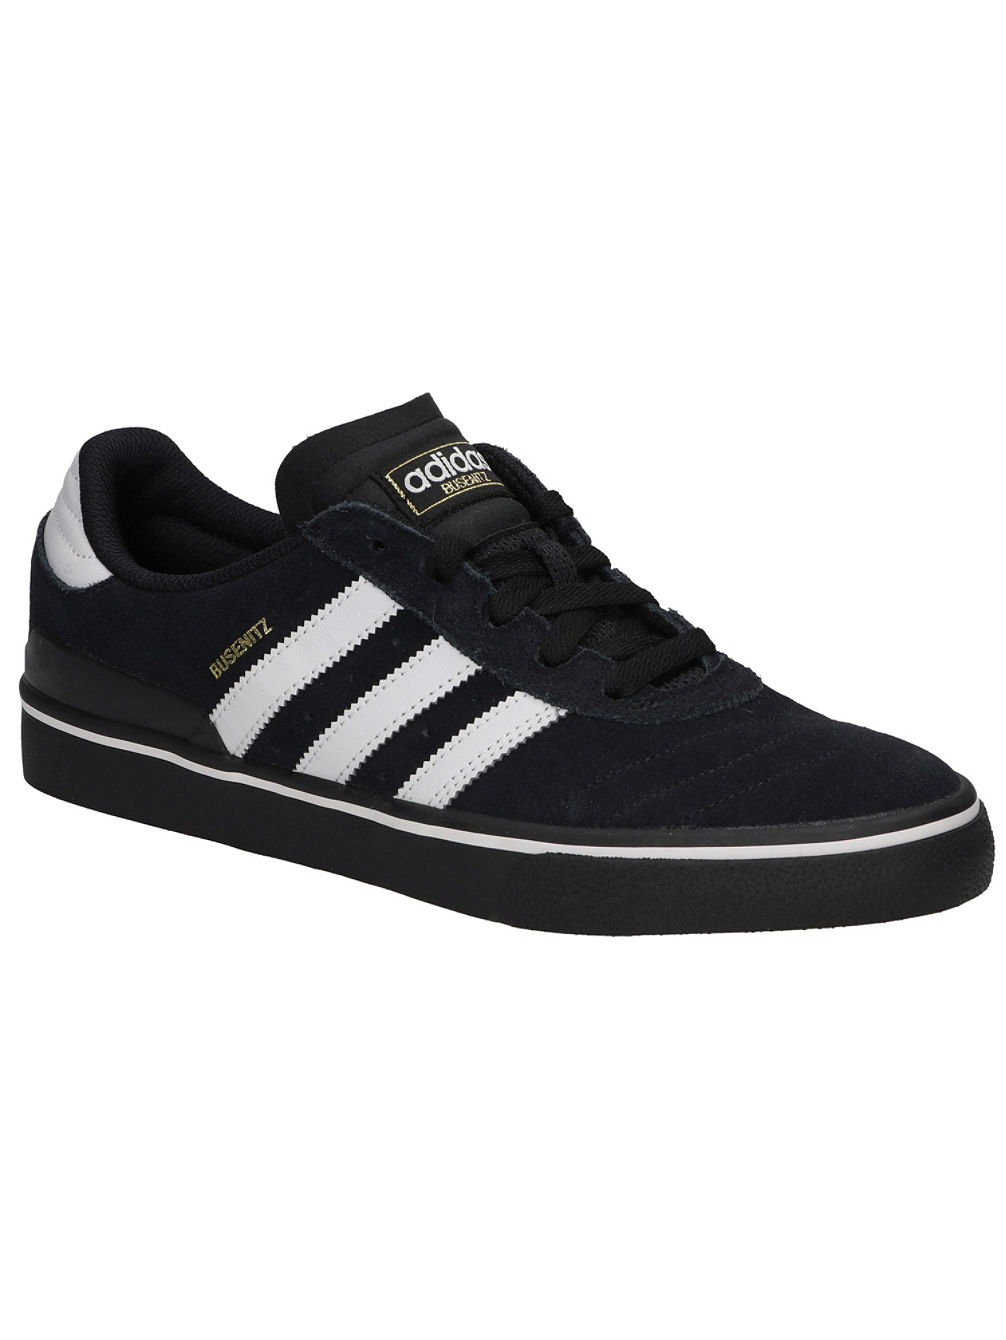 Buy adidas Skateboarding Busenitz Vulc ADV Skate Shoes online at ... e6df50652f